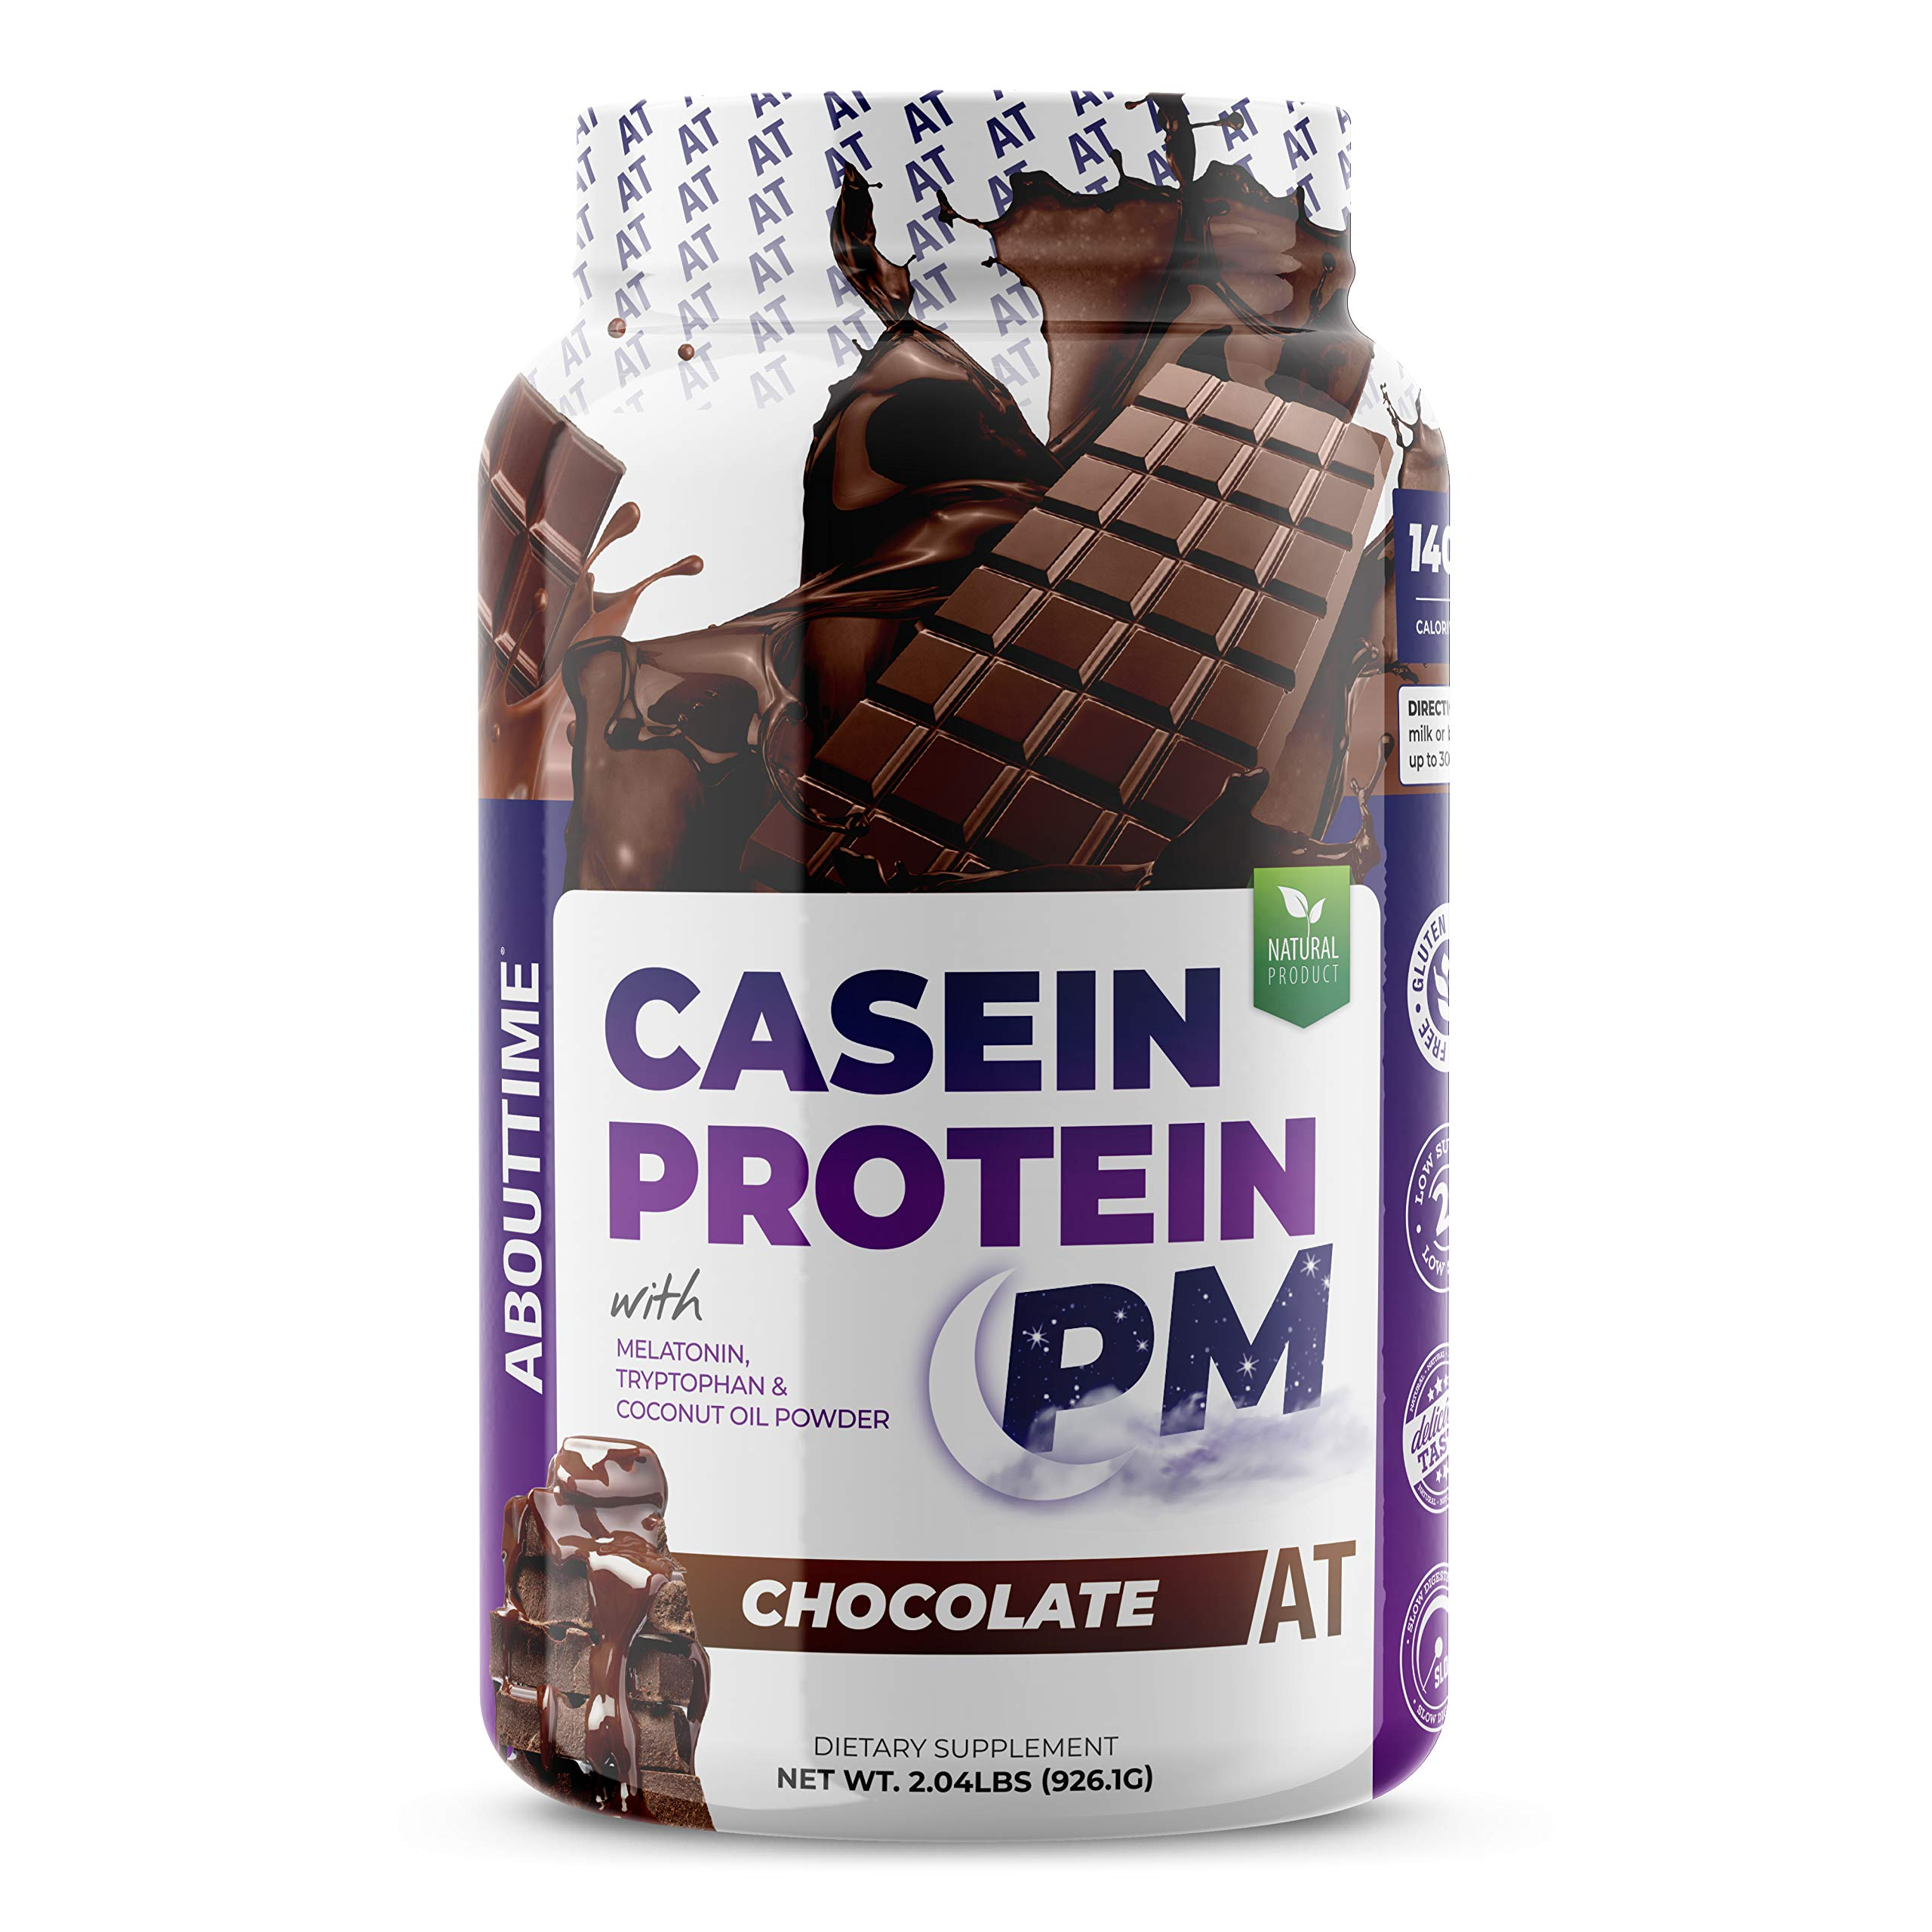 Amazon.com: About Time Casein Protein Chocolate 2lb - 20g Protein, Nighttime Recovery Formula, No Artificial Sweeteners, No Growth Hormones: Health ...